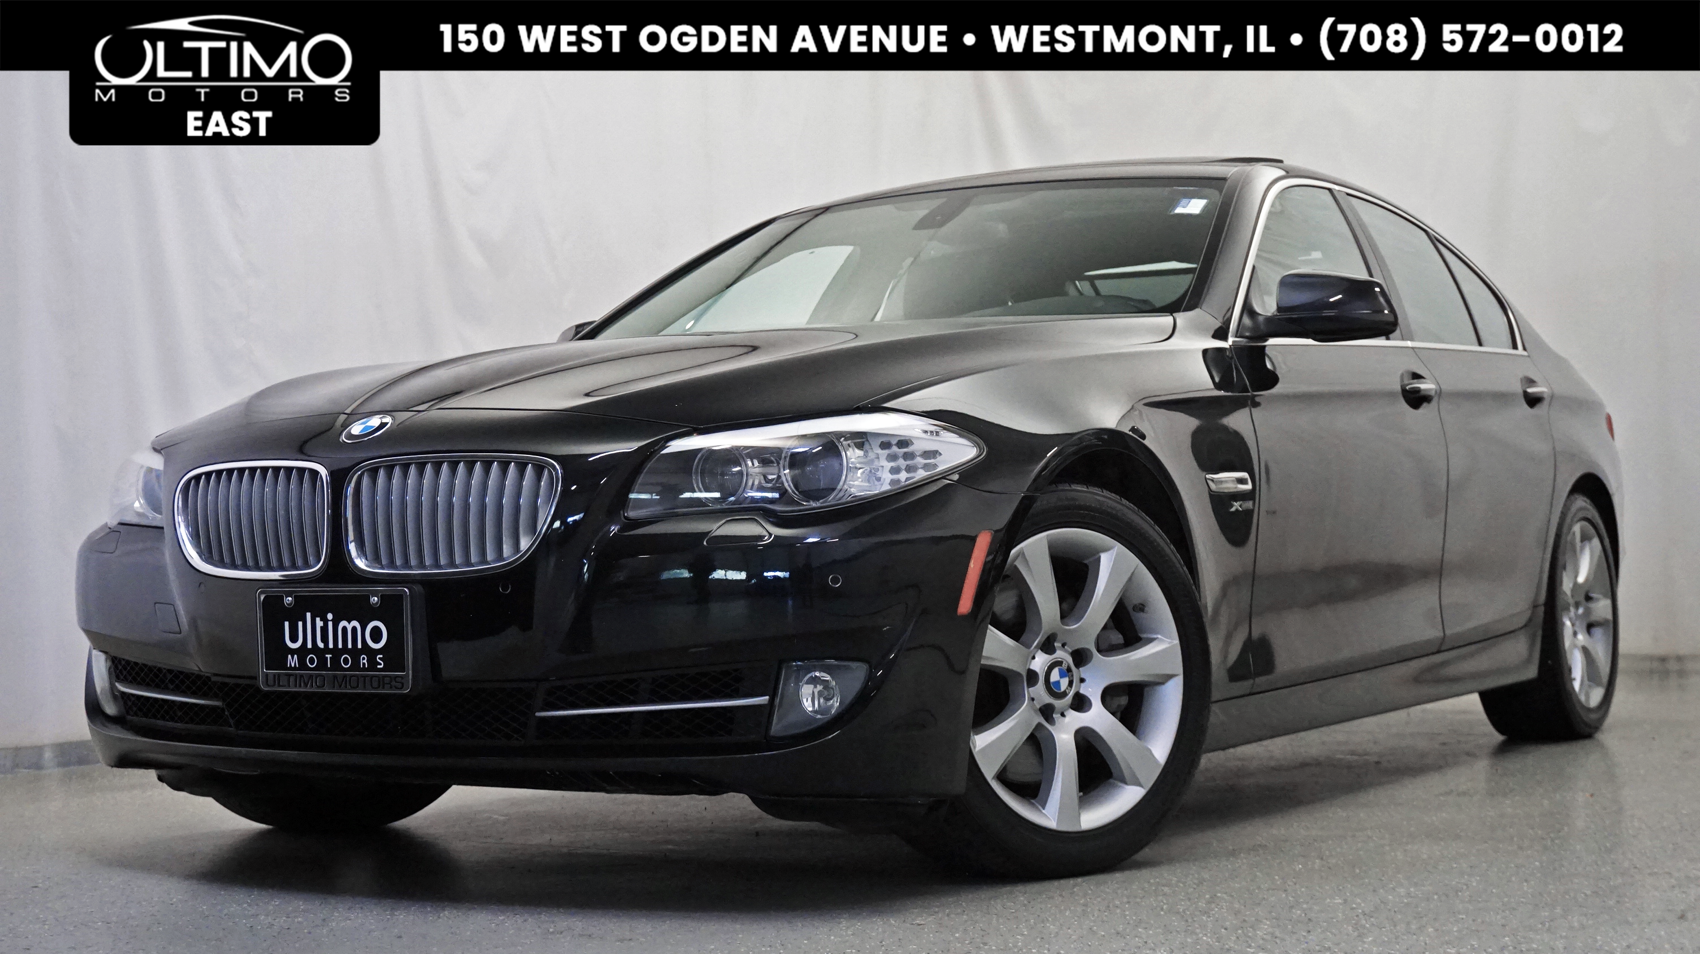 Pre-Owned 2011 BMW 5 Series 550i xDrive Premium Pkg, Cold Weather Pkg, Convenience Pkg 400HP